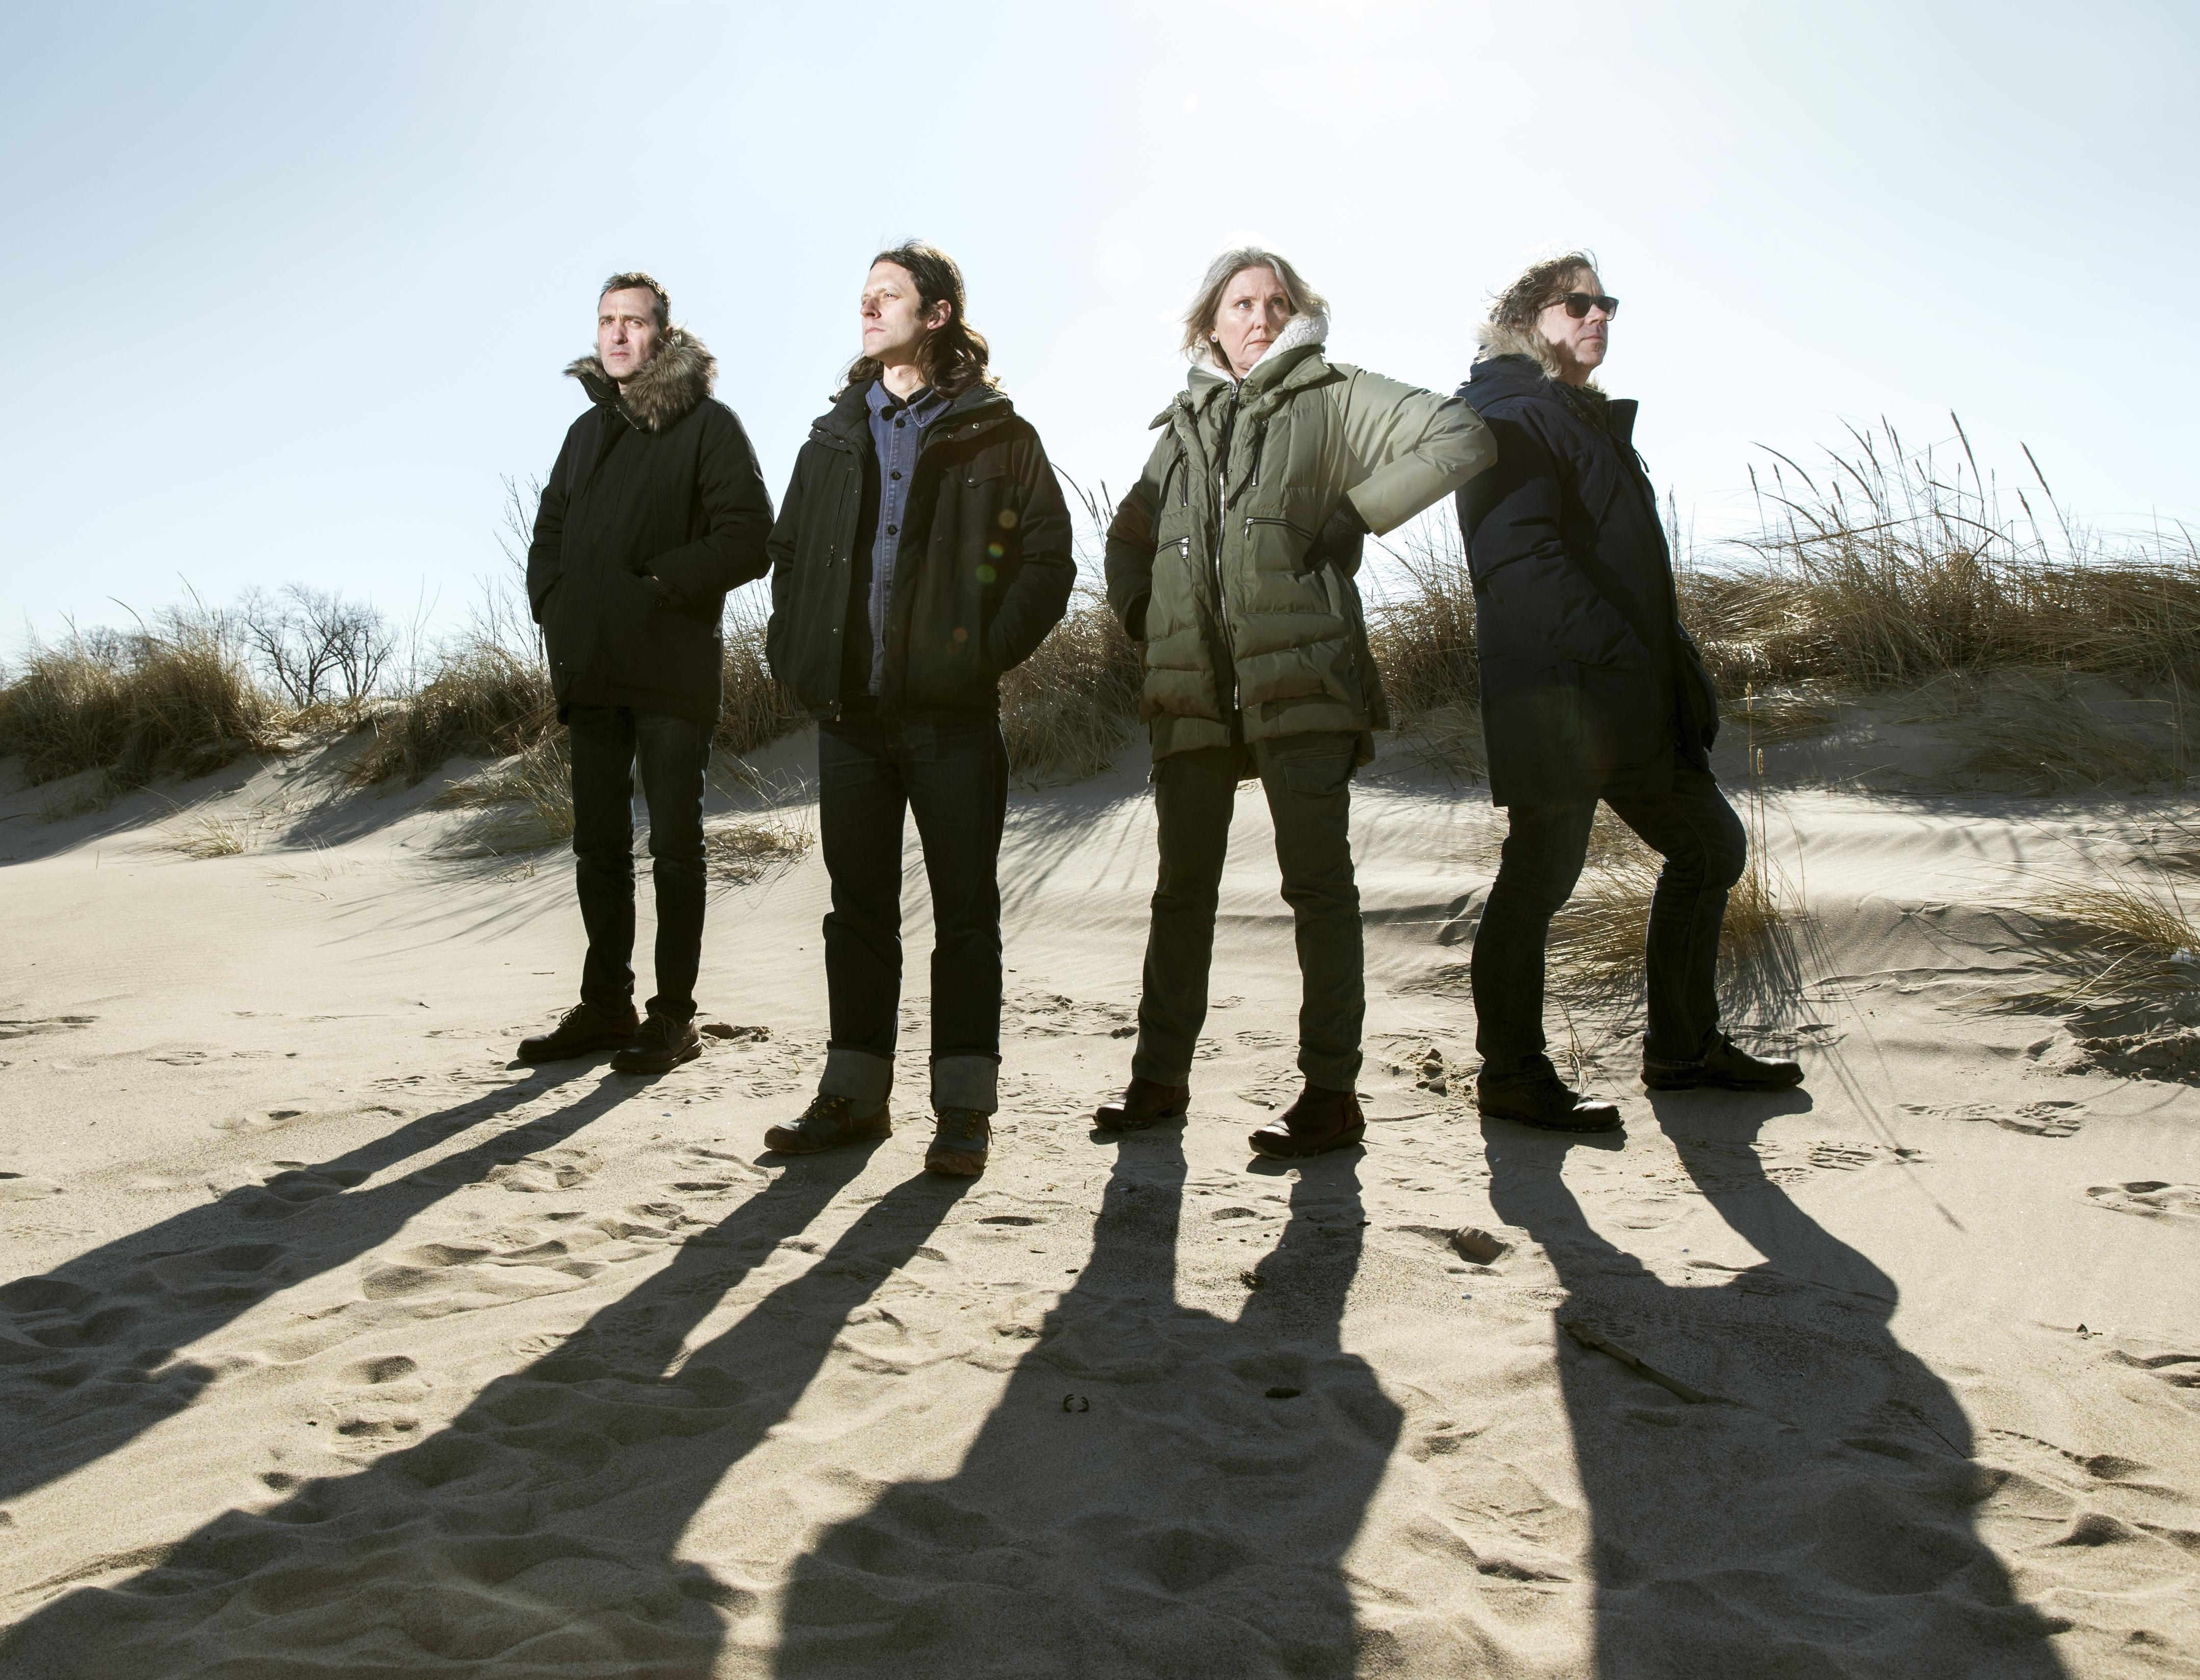 Three men and one woman stand on a beach on a sunny day wearing heavy parkas.